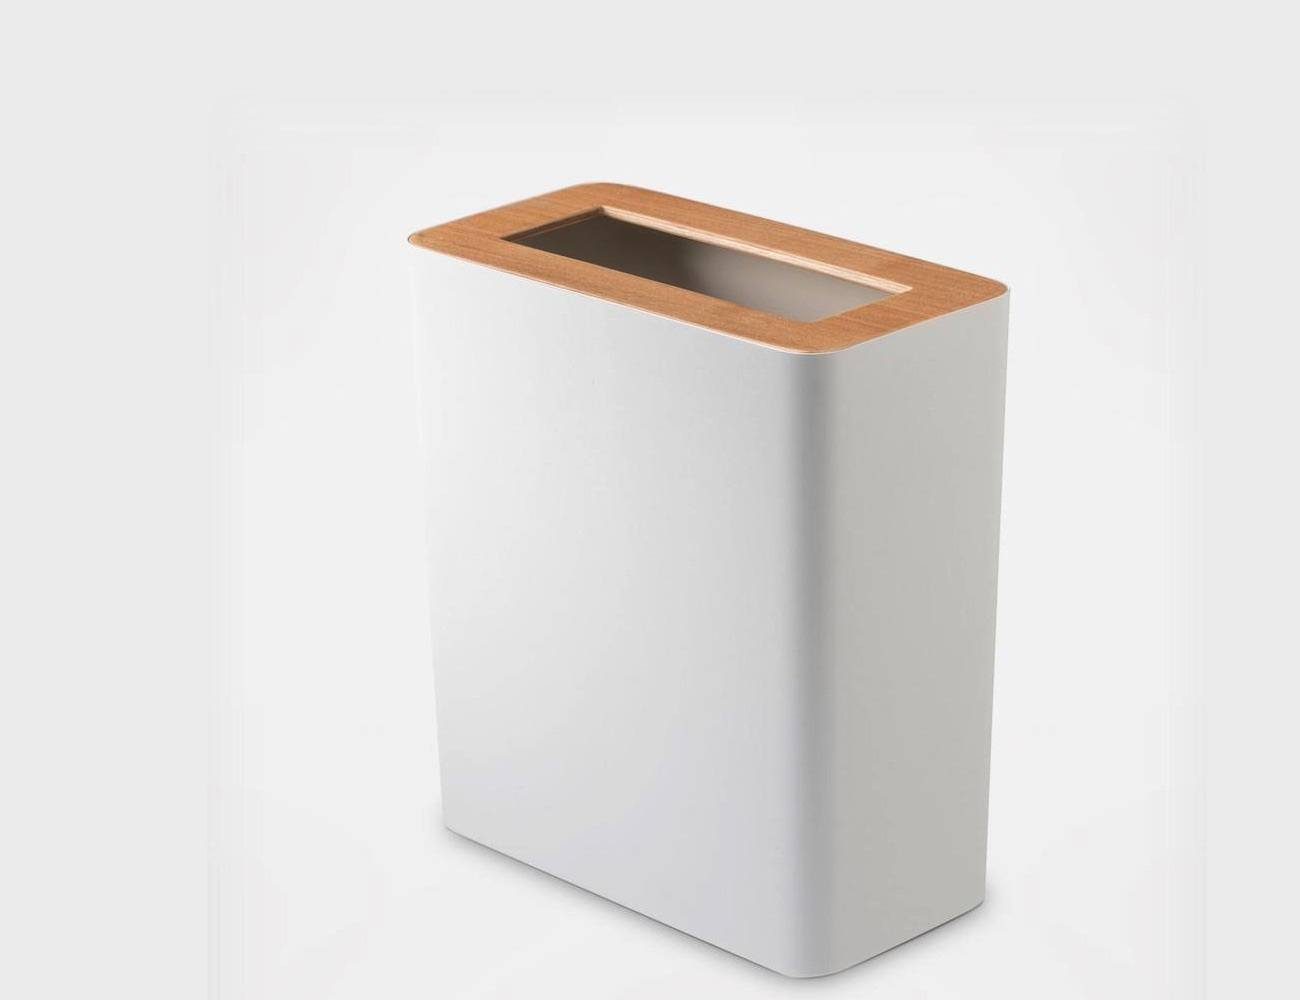 ... Rin Slim Trash Can With Wood Cover